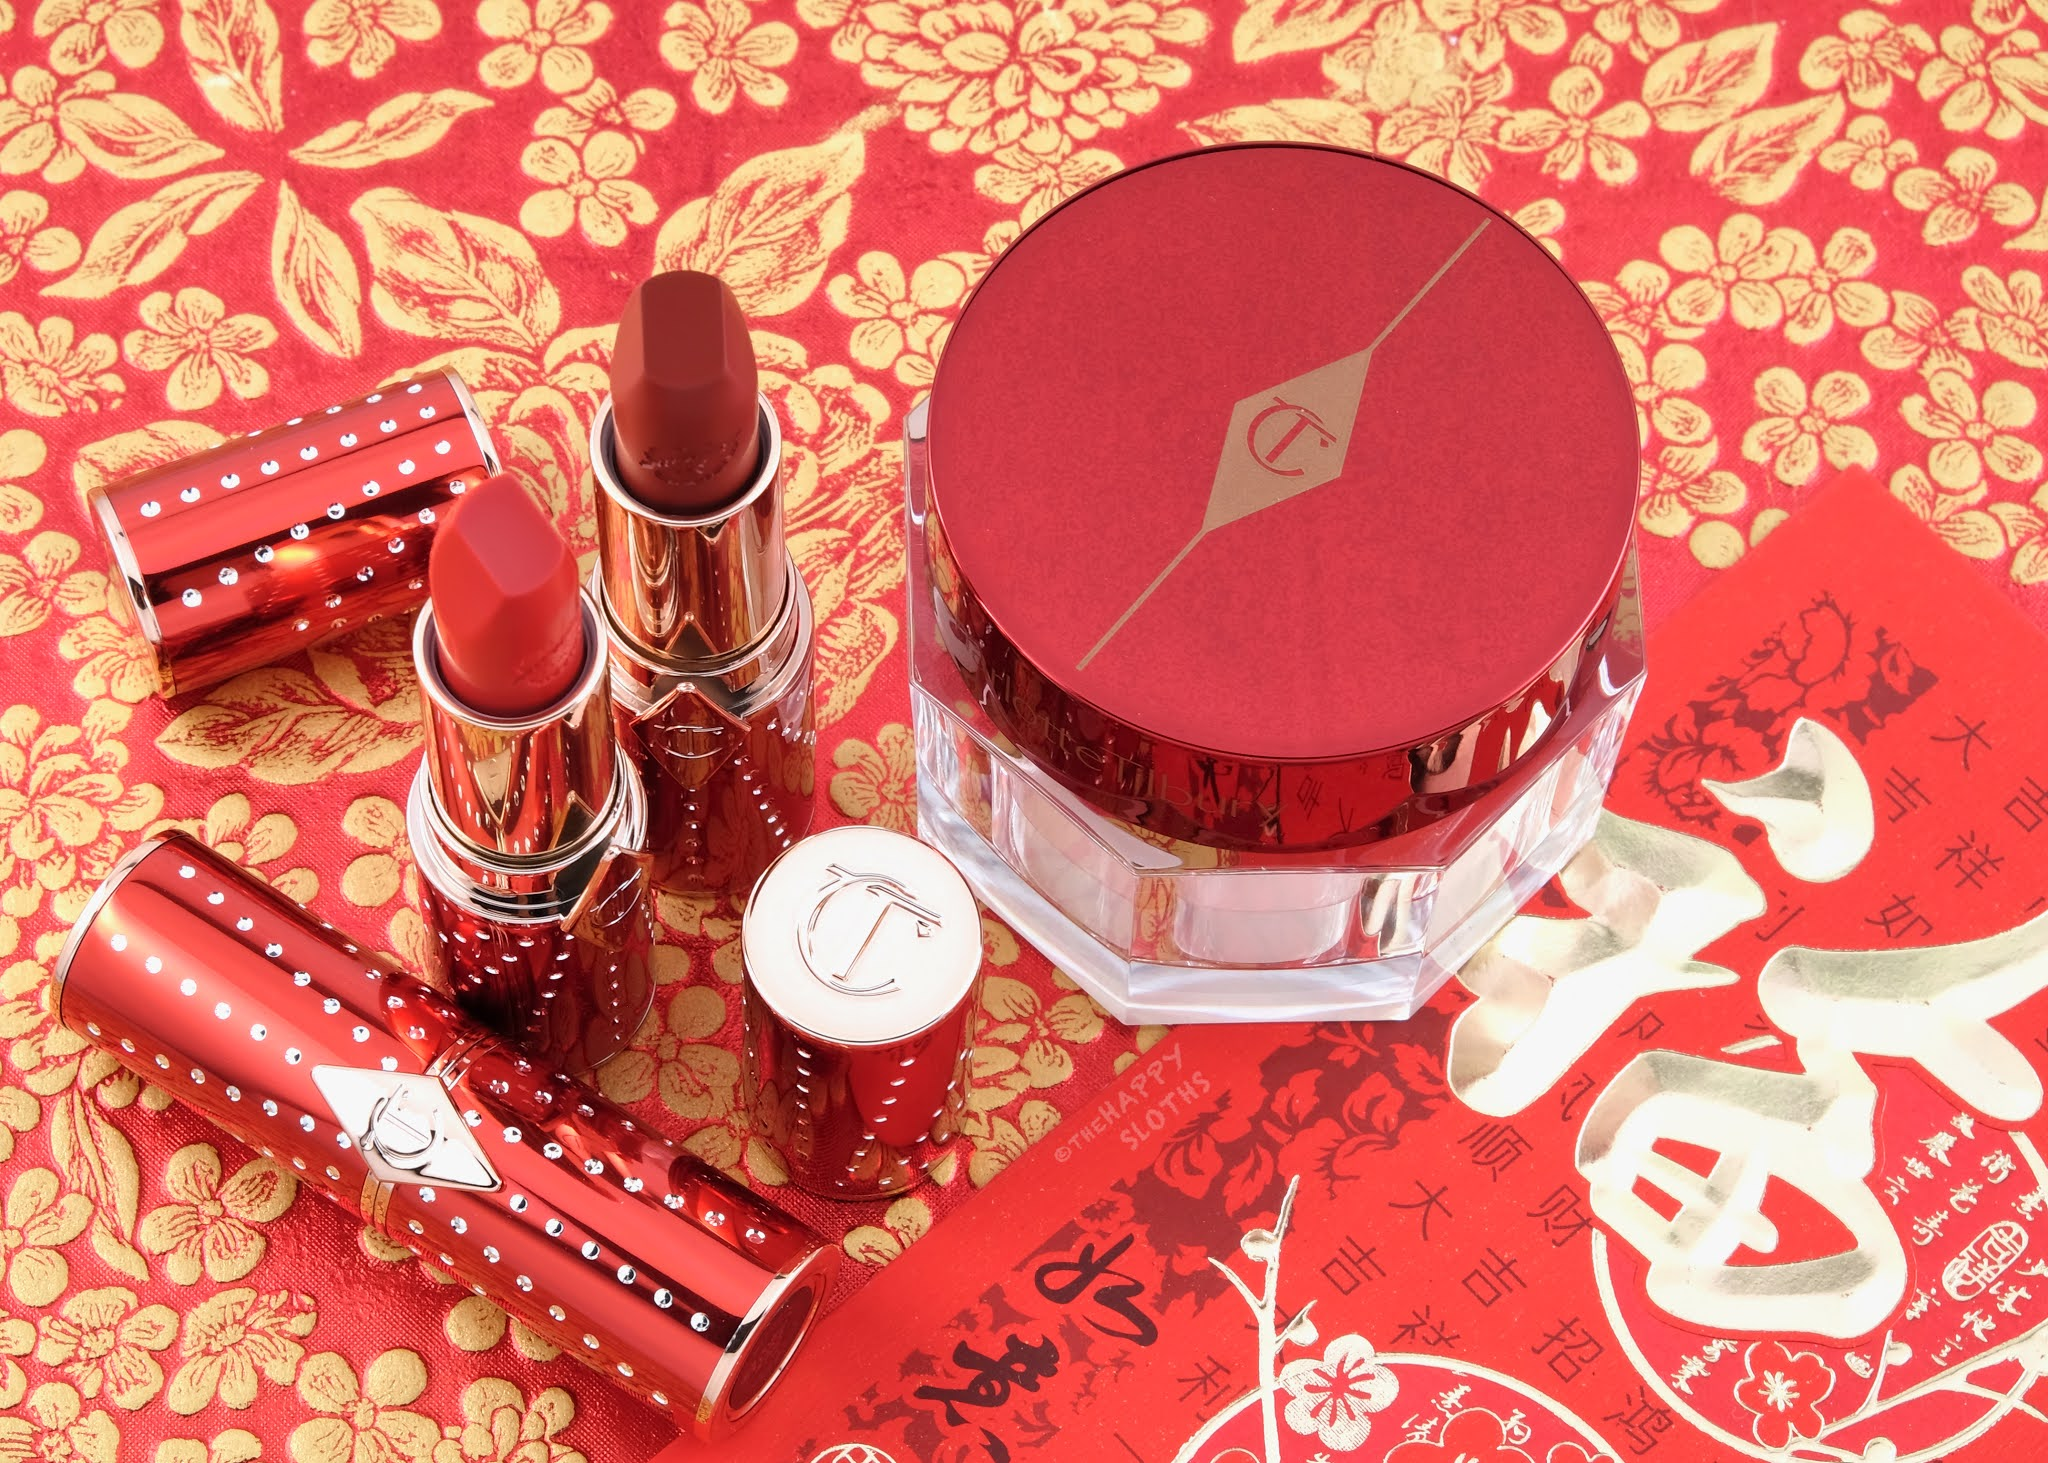 Charlotte Tilbury | Lunar New Year 2021 Collection: Review and Swatches